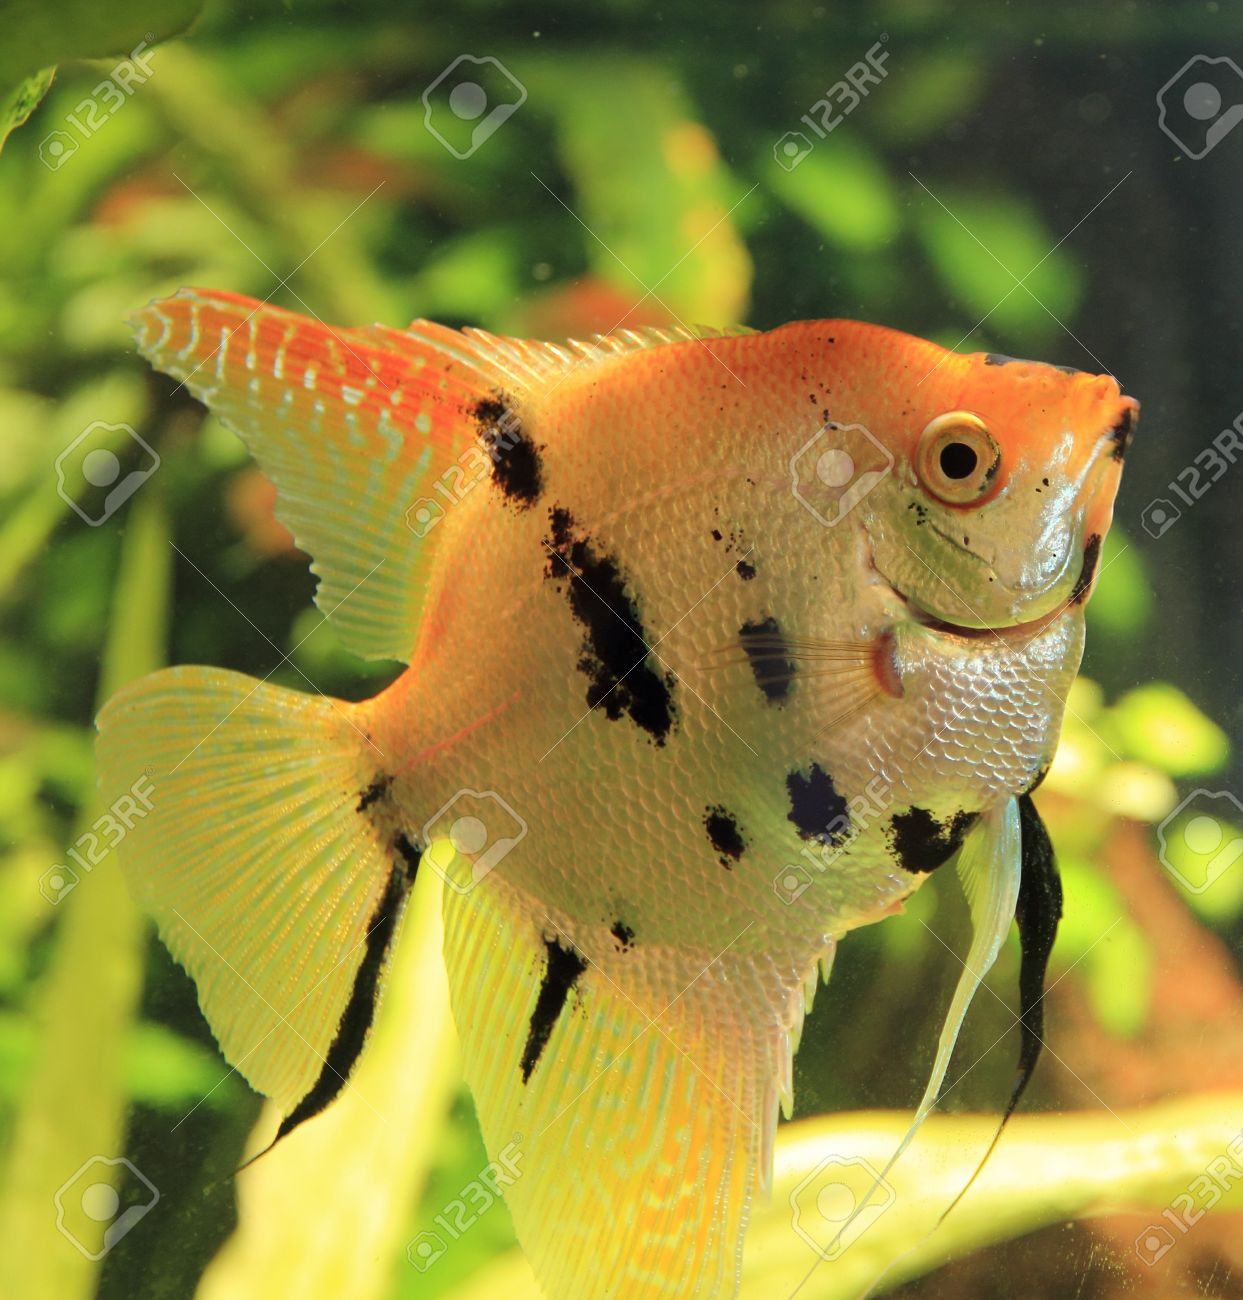 Freshwater aquarium fish angelfish - Stock Photo Nice Looking Angelfish In Bright Fish Tank